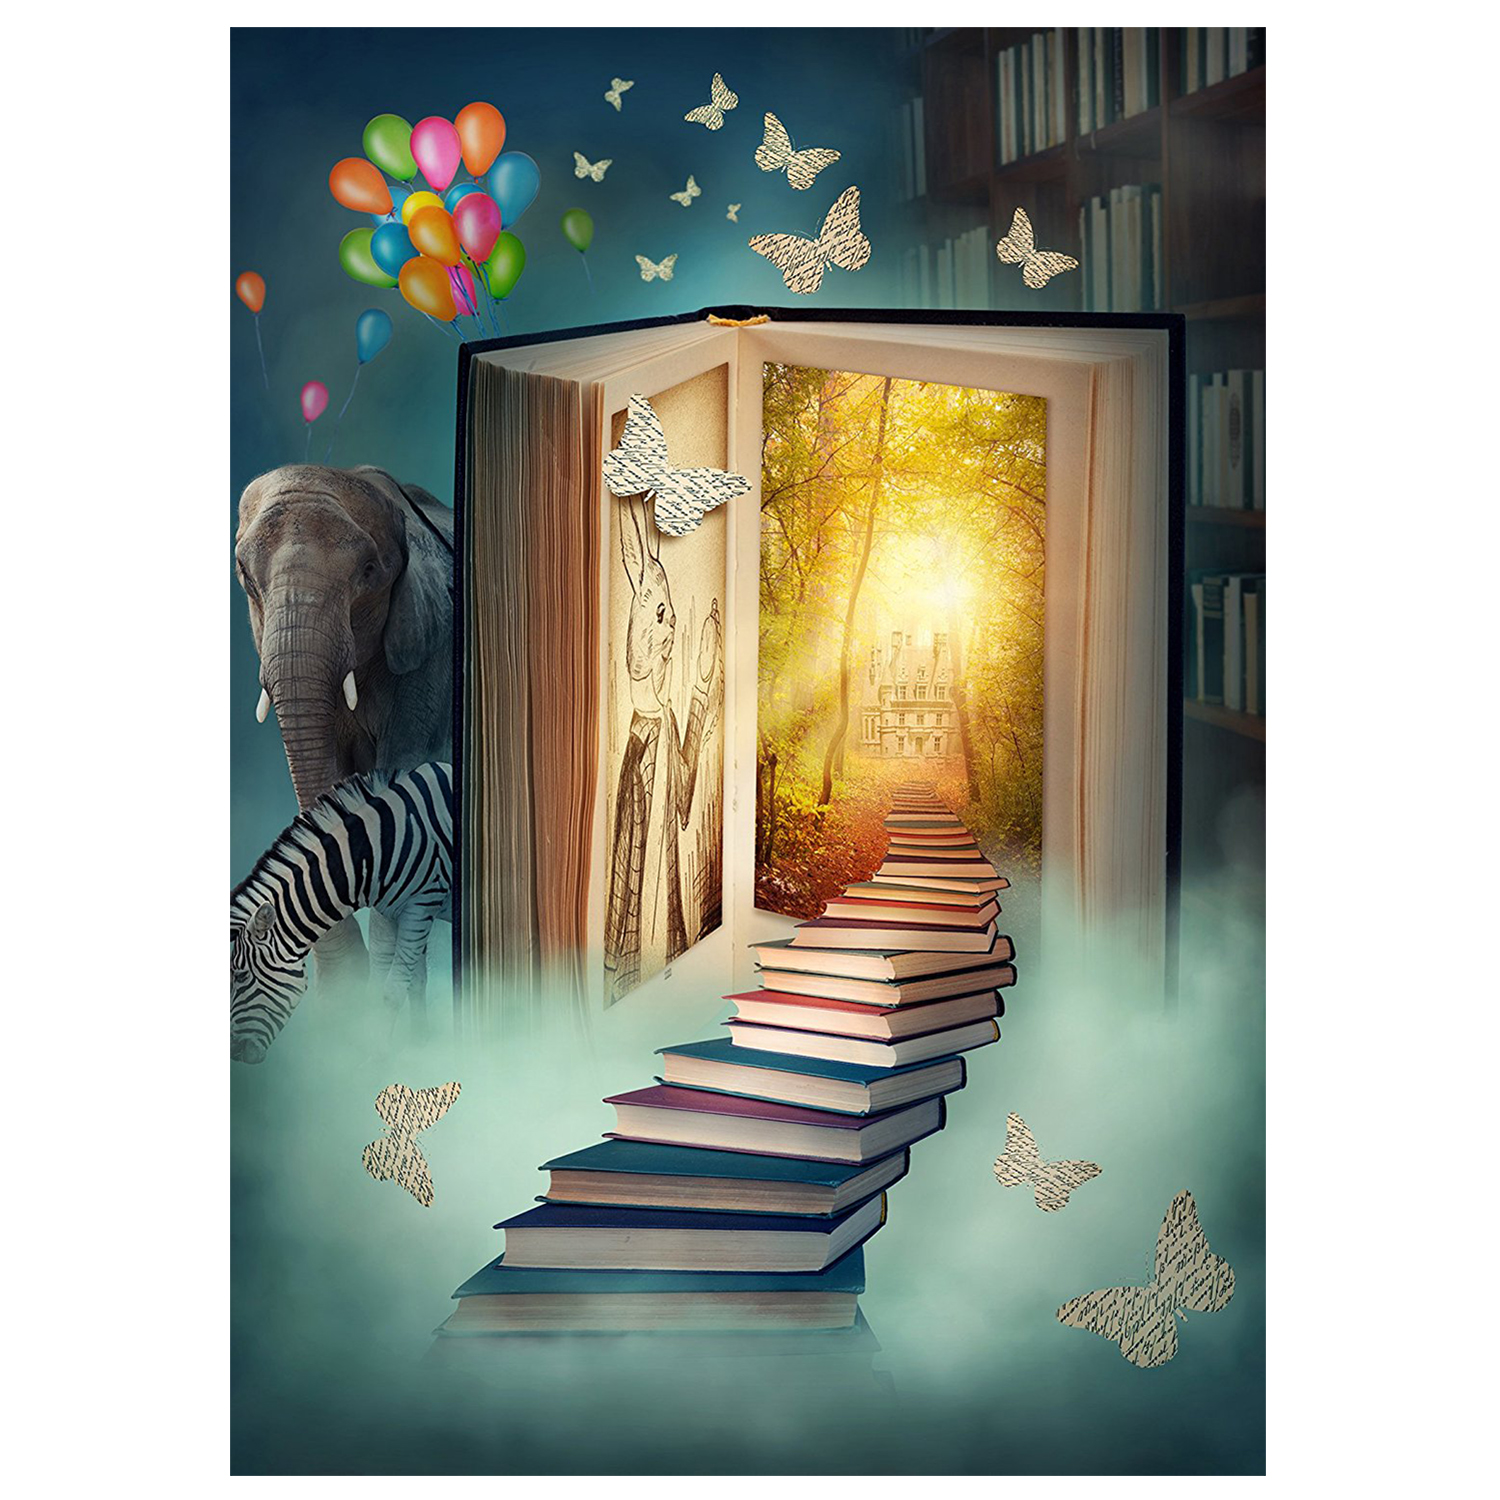 Fairy Tale Background for Photo 3x5ft Children Theme Book World Elephant zebra Photography Backdrop Studio Props Wall photo background 5x7ft fairy tale mushroom house photography backdrop studio props for children